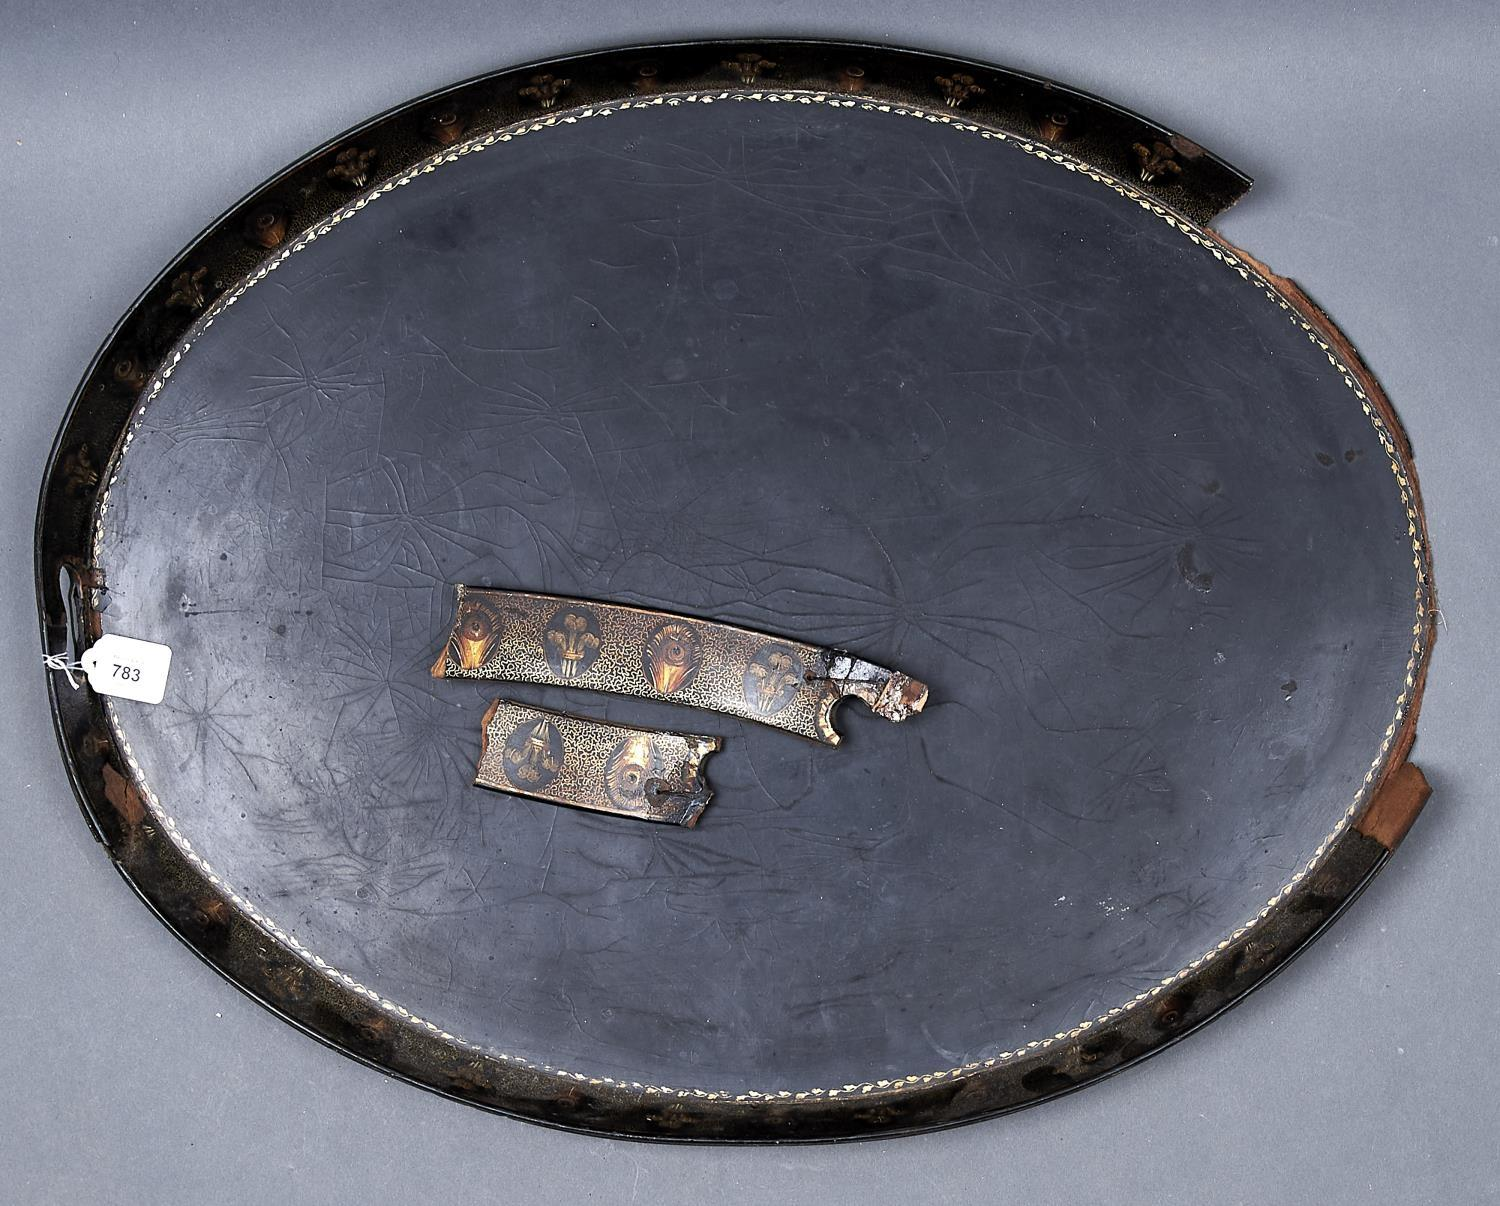 A REGENCY PAPIER MACHE STRAIGHT-EDGE TRAY, C1820, THE BORDER FINELY PAINTED WITH ALTERNATING